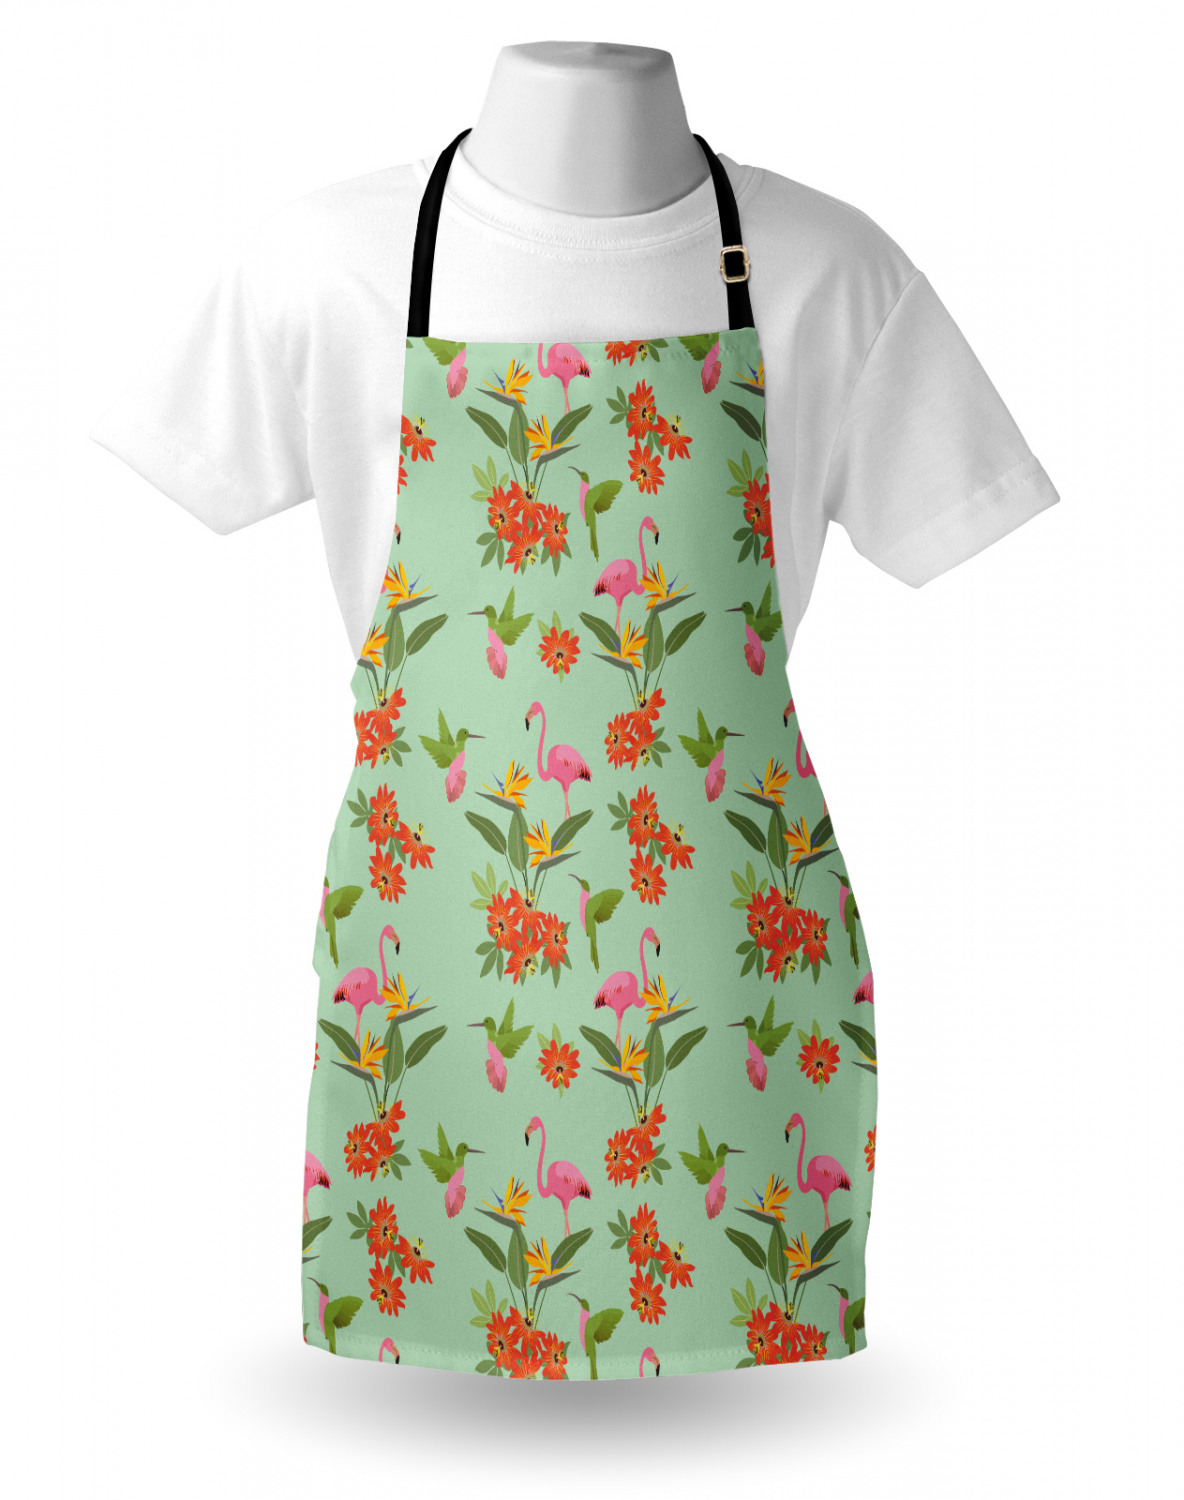 Ambesonne-Outdoor-Use-Apron-with-Adjustable-Neck-Strap-for-Gardening-and-Cooking miniatura 171